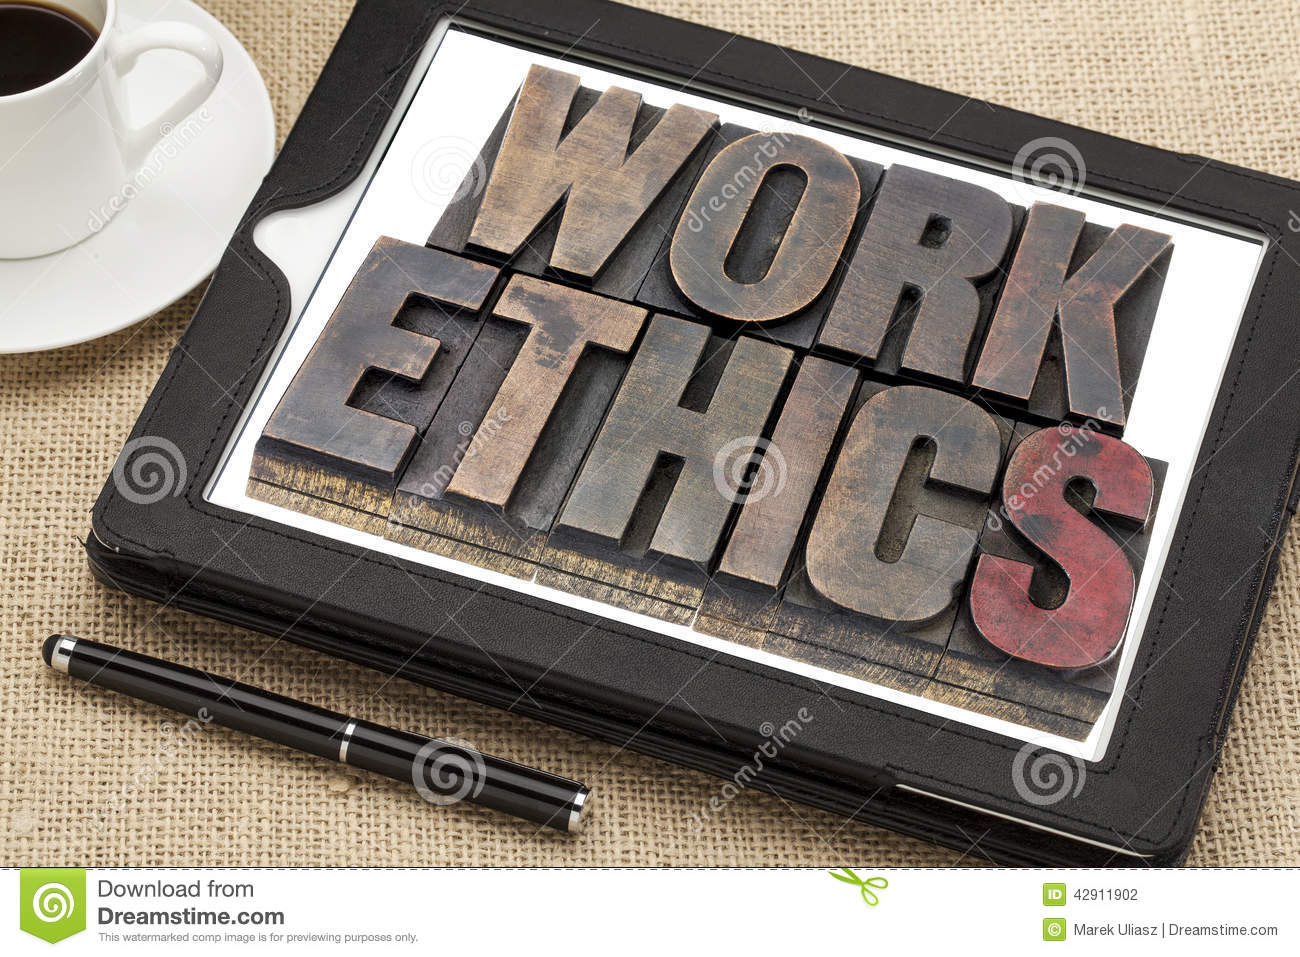 work ethics on digital tablet stock photo image  work ethics on digital tablet